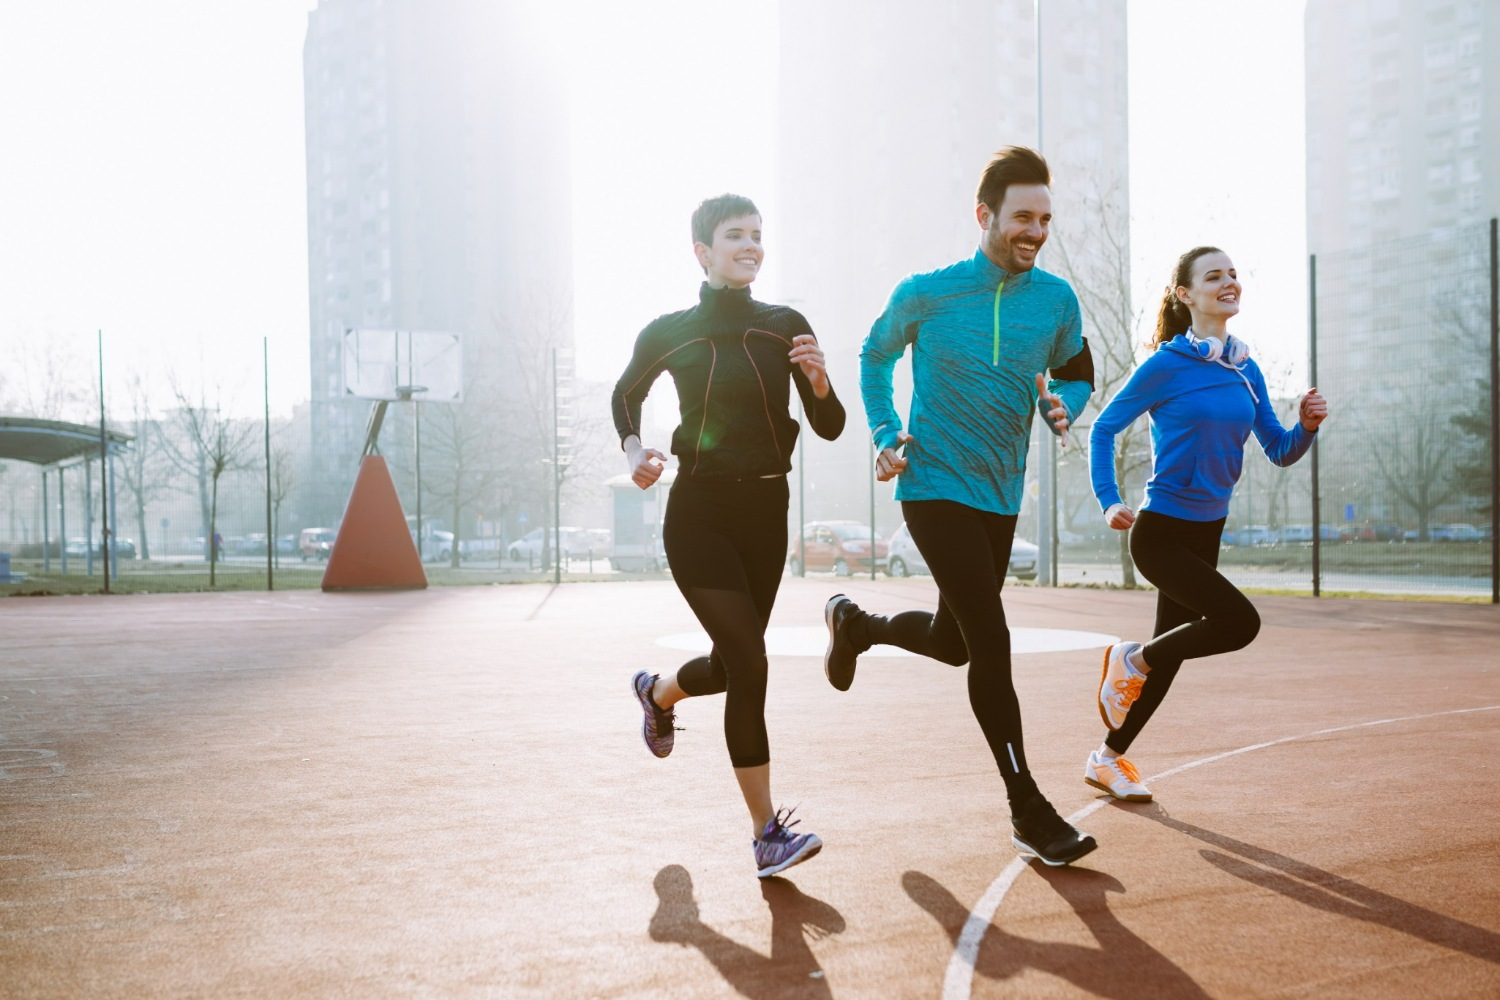 Physical activity is good for psychological health | Shutterstock